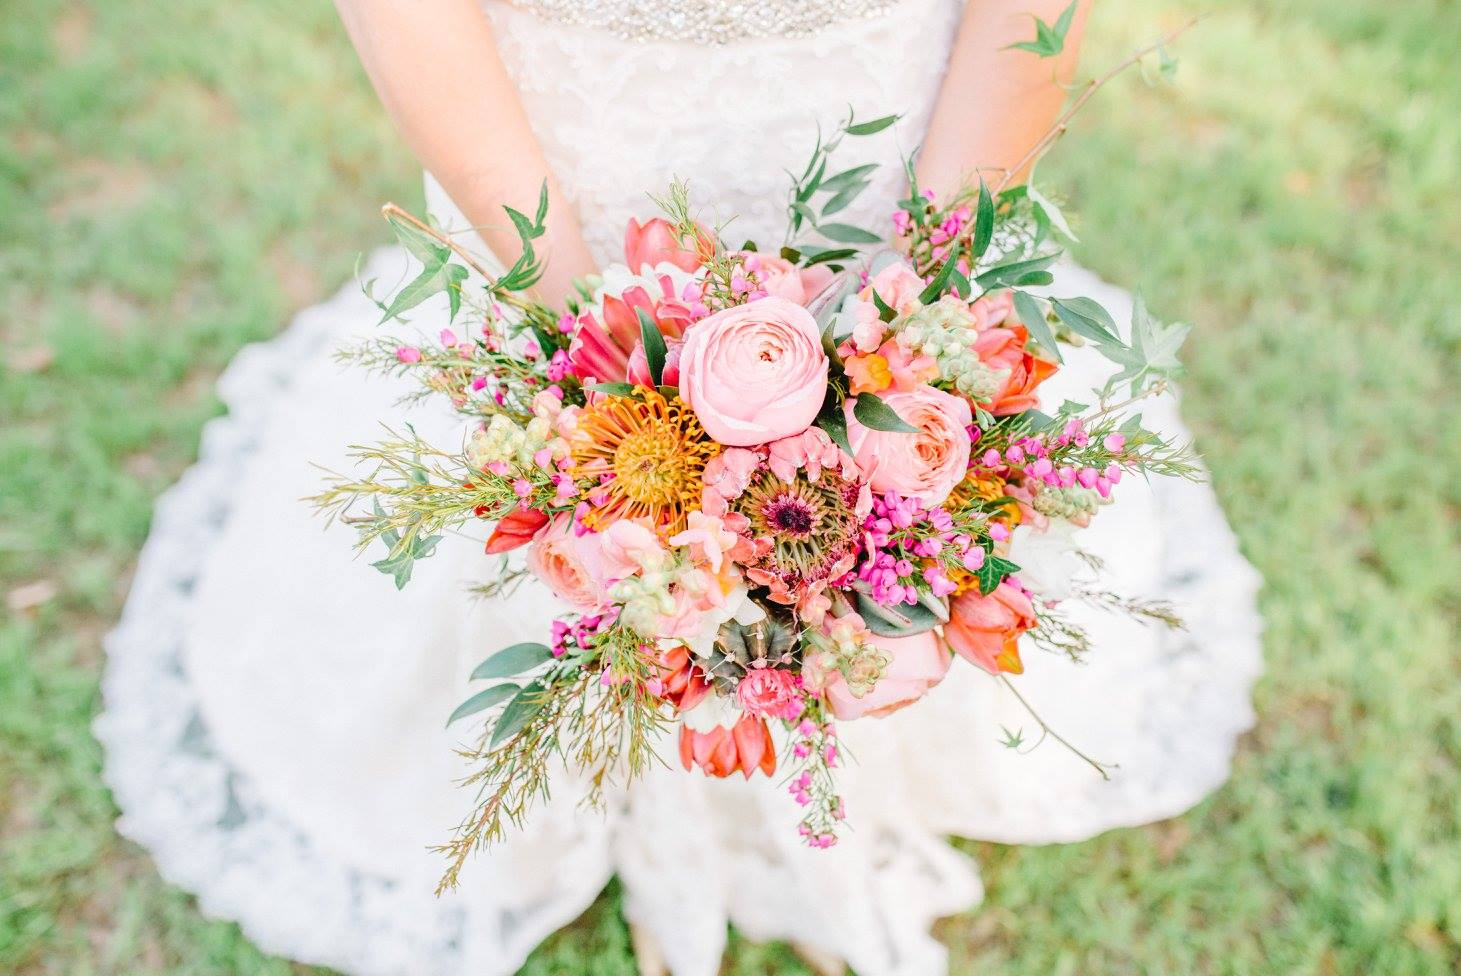 Sterling Imageworks . Lea always loves The Barn's florals, especially bright, colorful ones like  Morgan 's bouquet!